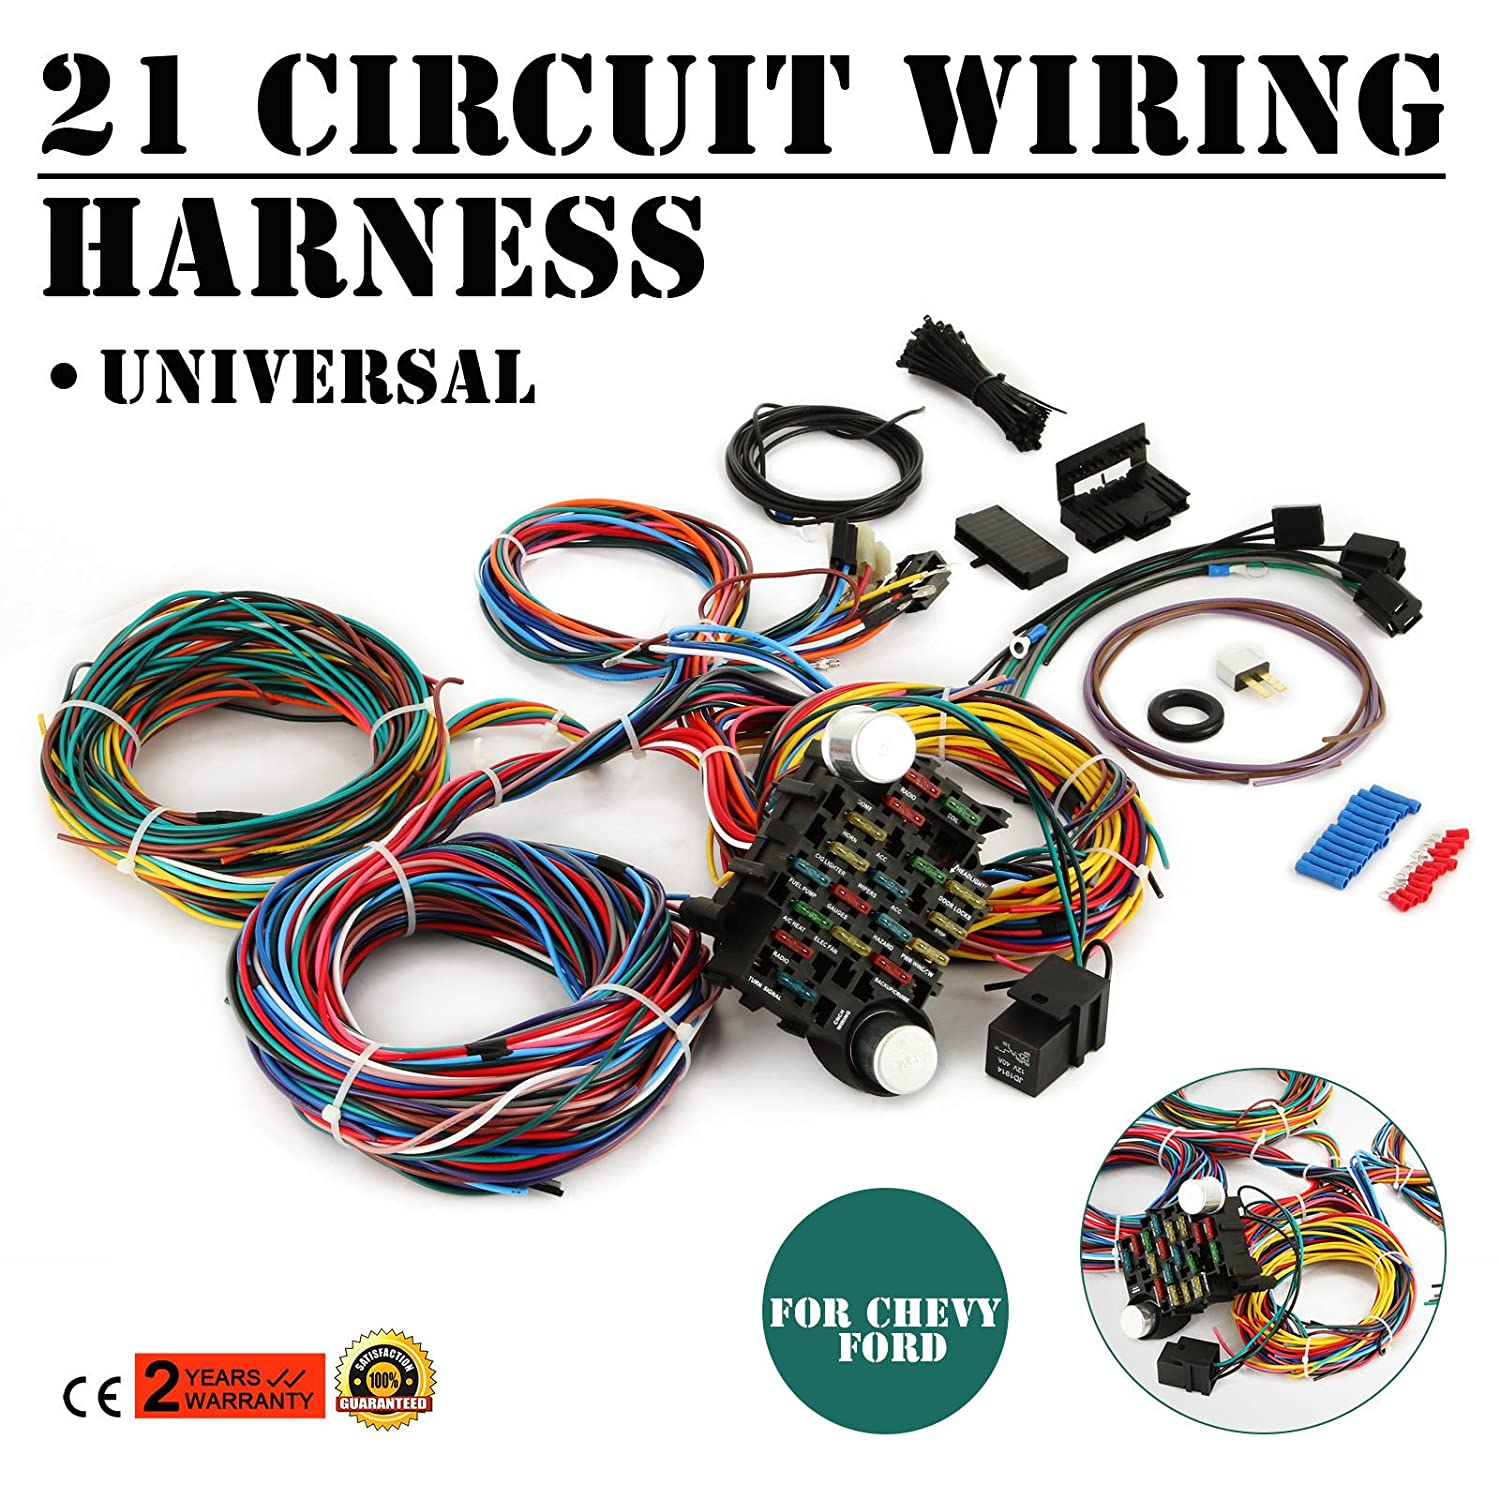 john deere 644b wiring harness diagram fc0d ez wiring 21 circuit diagram for mopar wiring library  ez wiring 21 circuit diagram for mopar